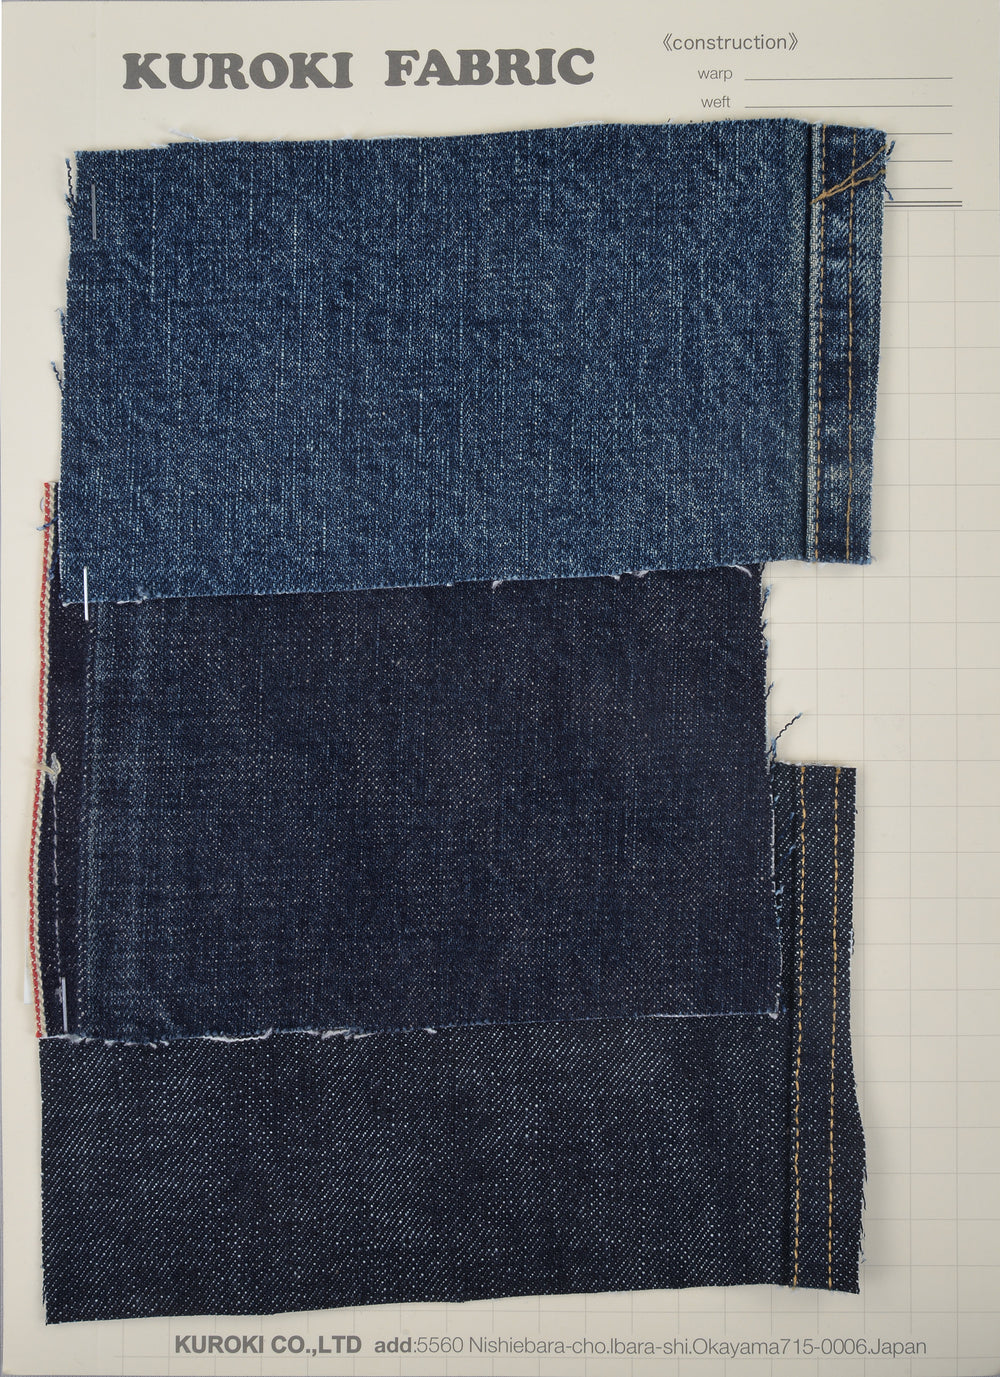 Jeans: 15 Oz Raw Selvedge by Kuroki Japan